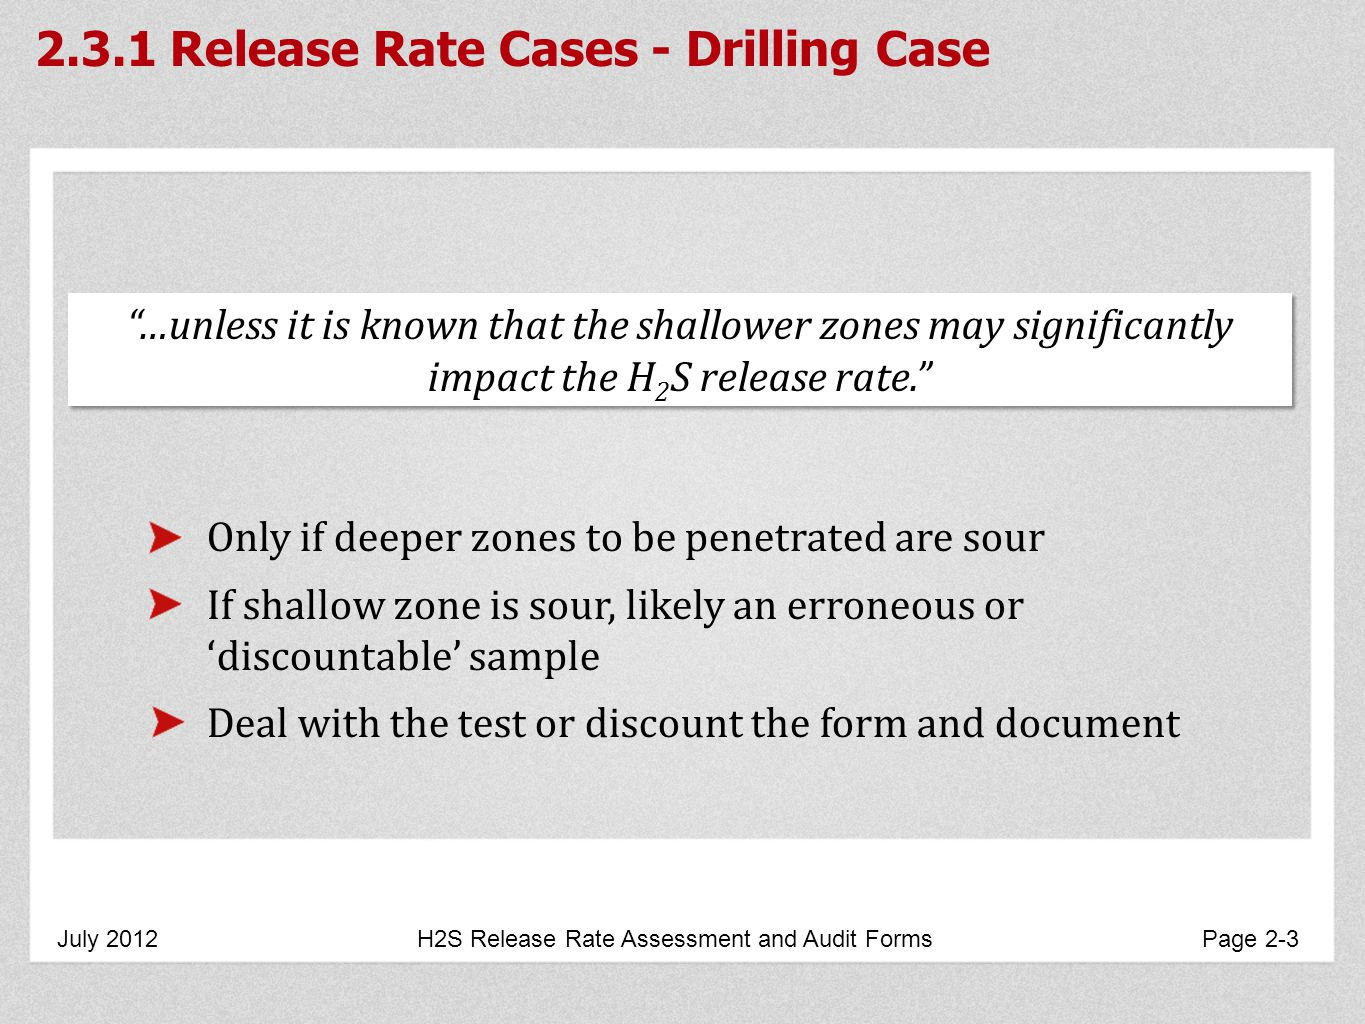 2.3.1 Release Rate Cases - Drilling Case July 2012 H2S Release Rate Assessment and Audit Forms Page 2-3 Only if deeper zones to be penetrated are sour If shallow zone is sour, likely an erroneous or discountable sample Deal with the test or discount the form and document …unless it is known that the shallower zones may significantly impact the H 2 S release rate.